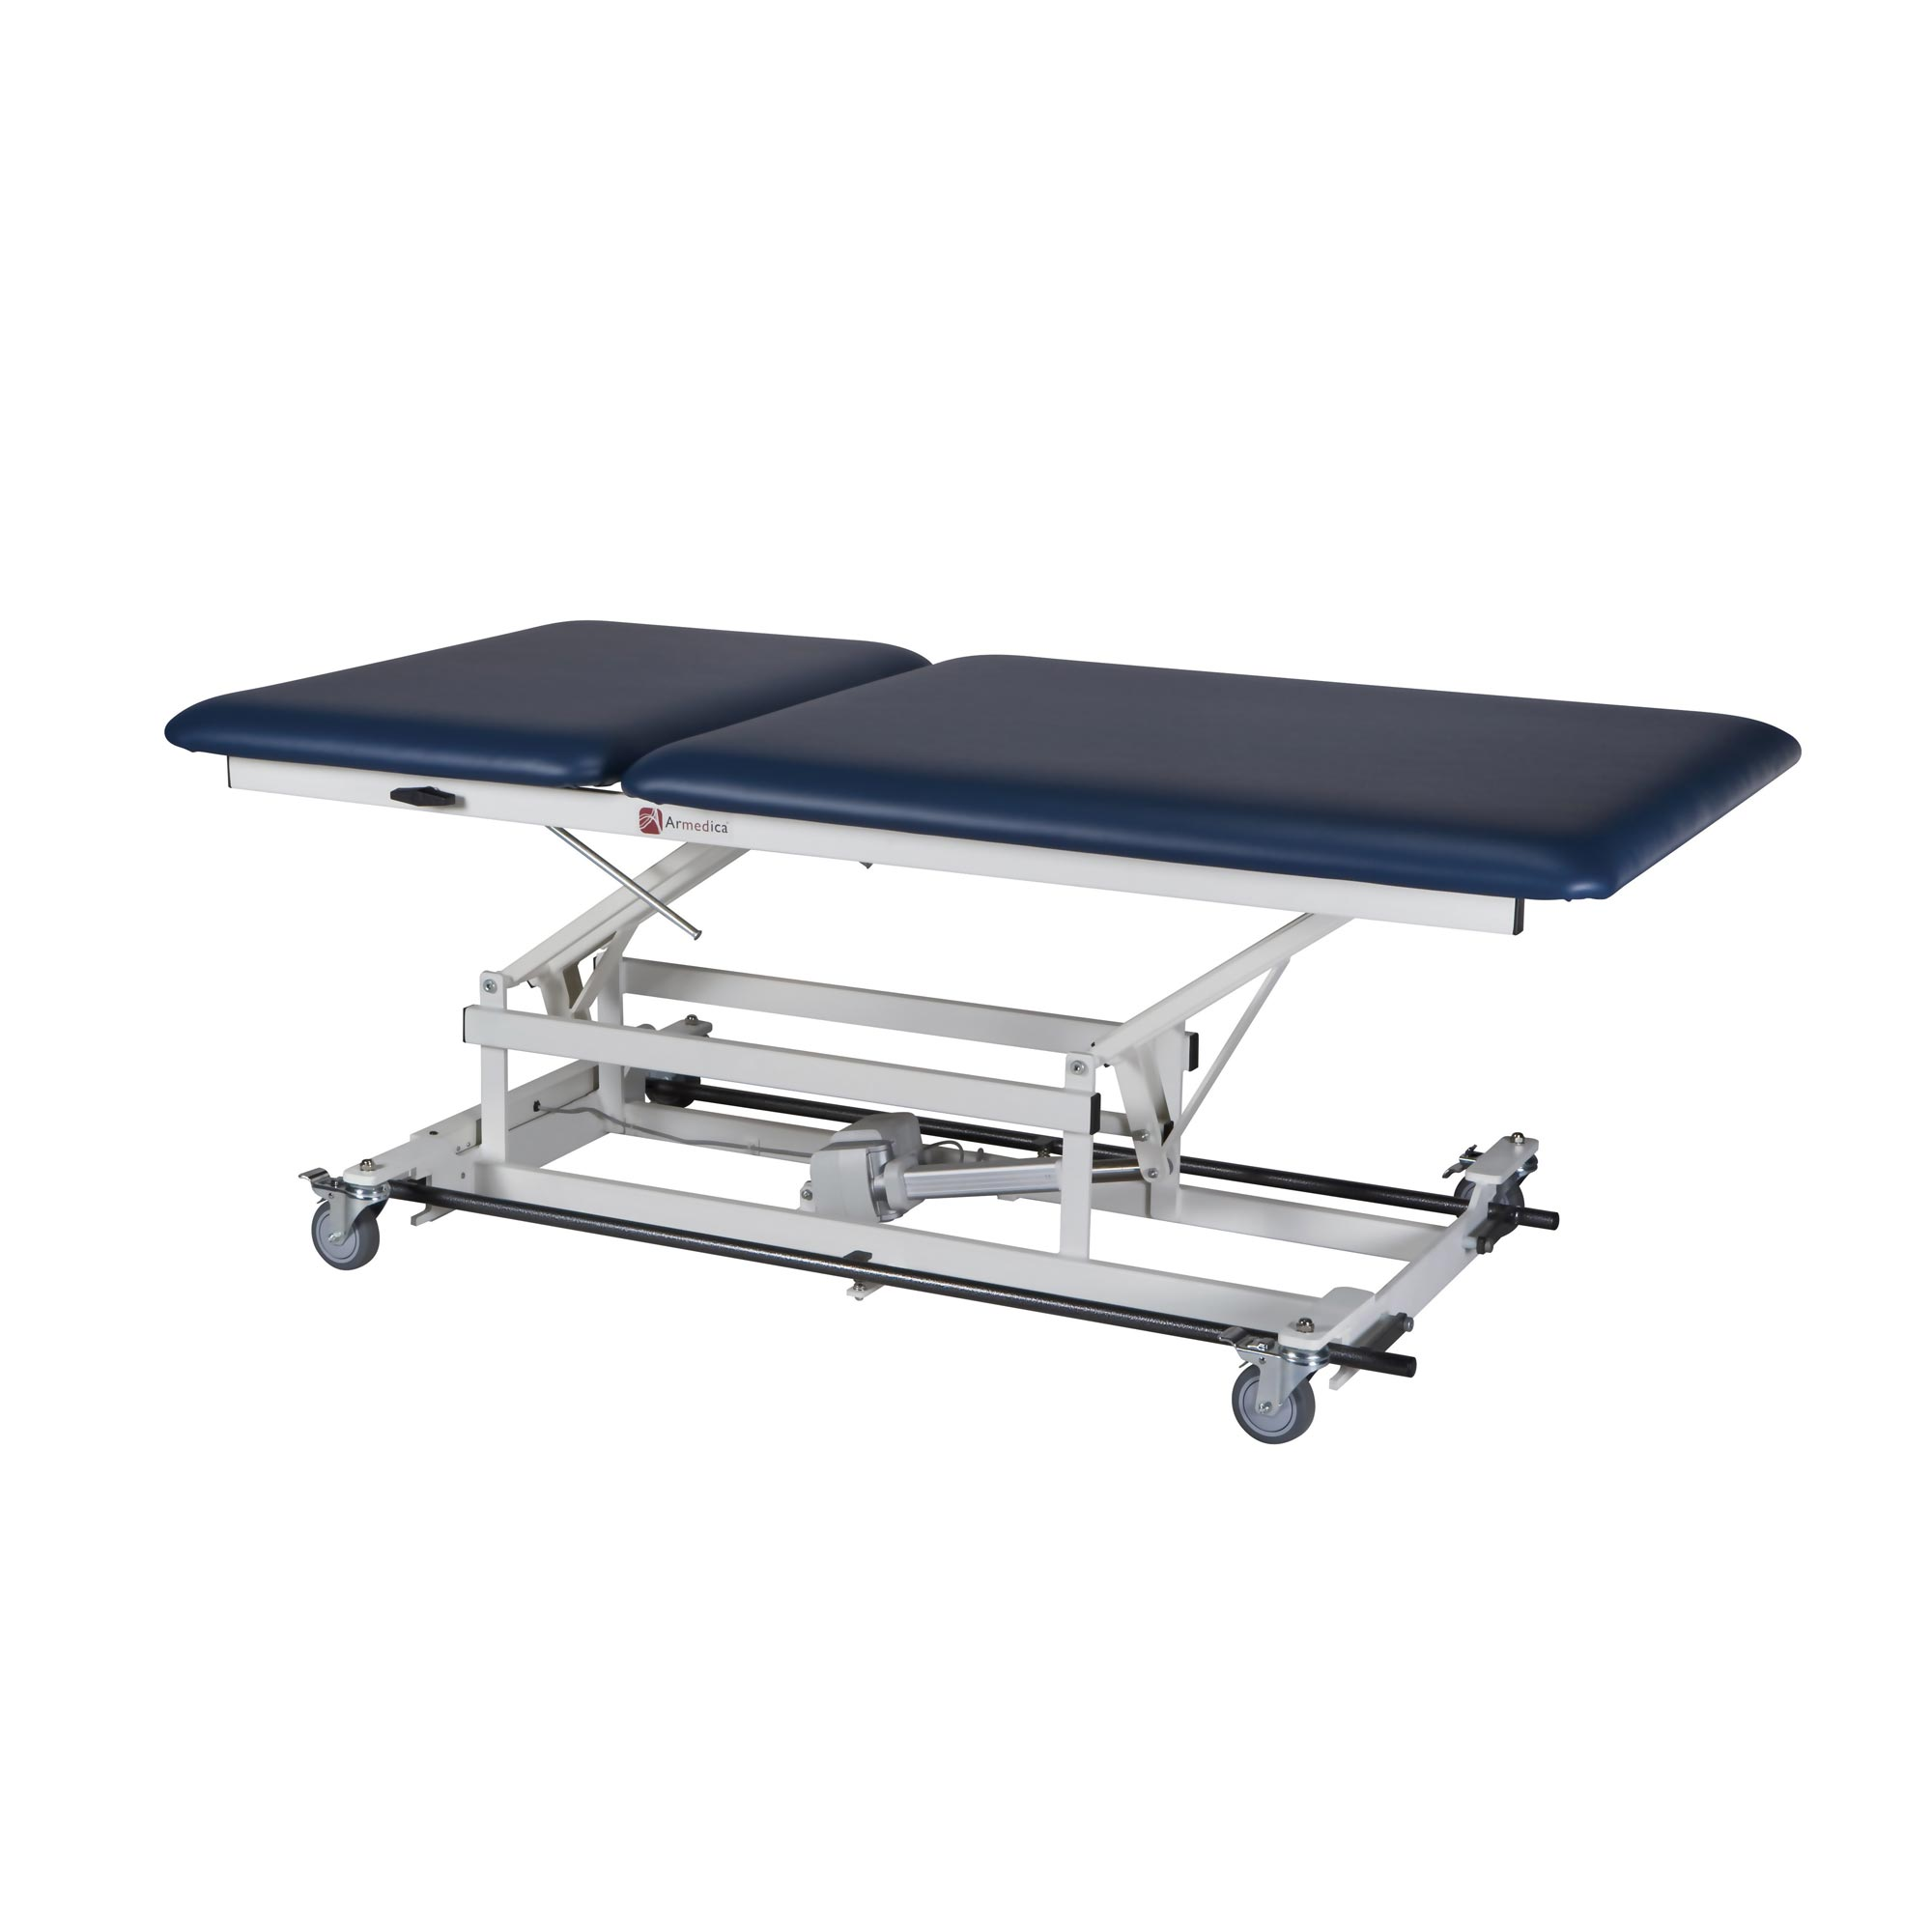 Armedica AM-BA 240 treatment table